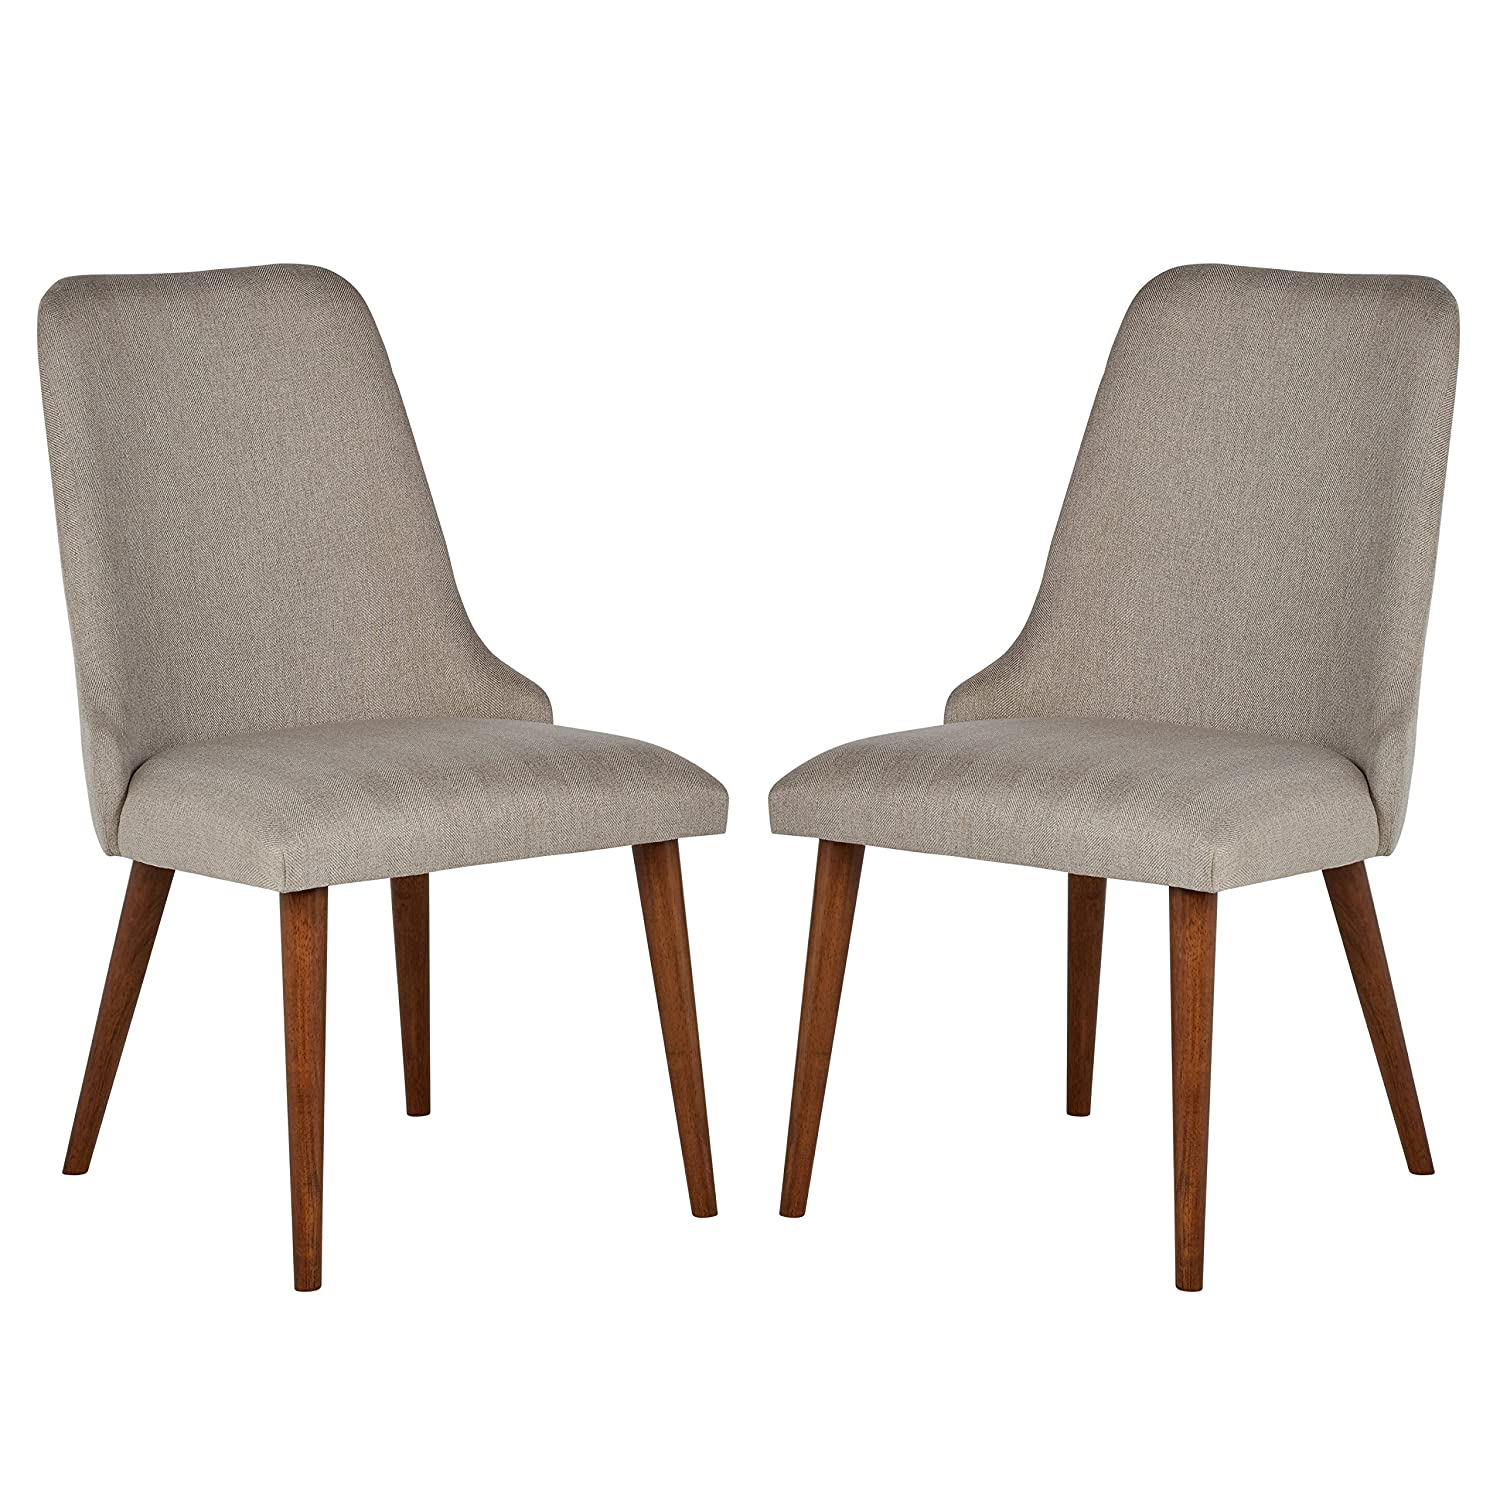 Amazon com rivet federal mid century modern wood dining chair pack of 2 grey kitchen dining